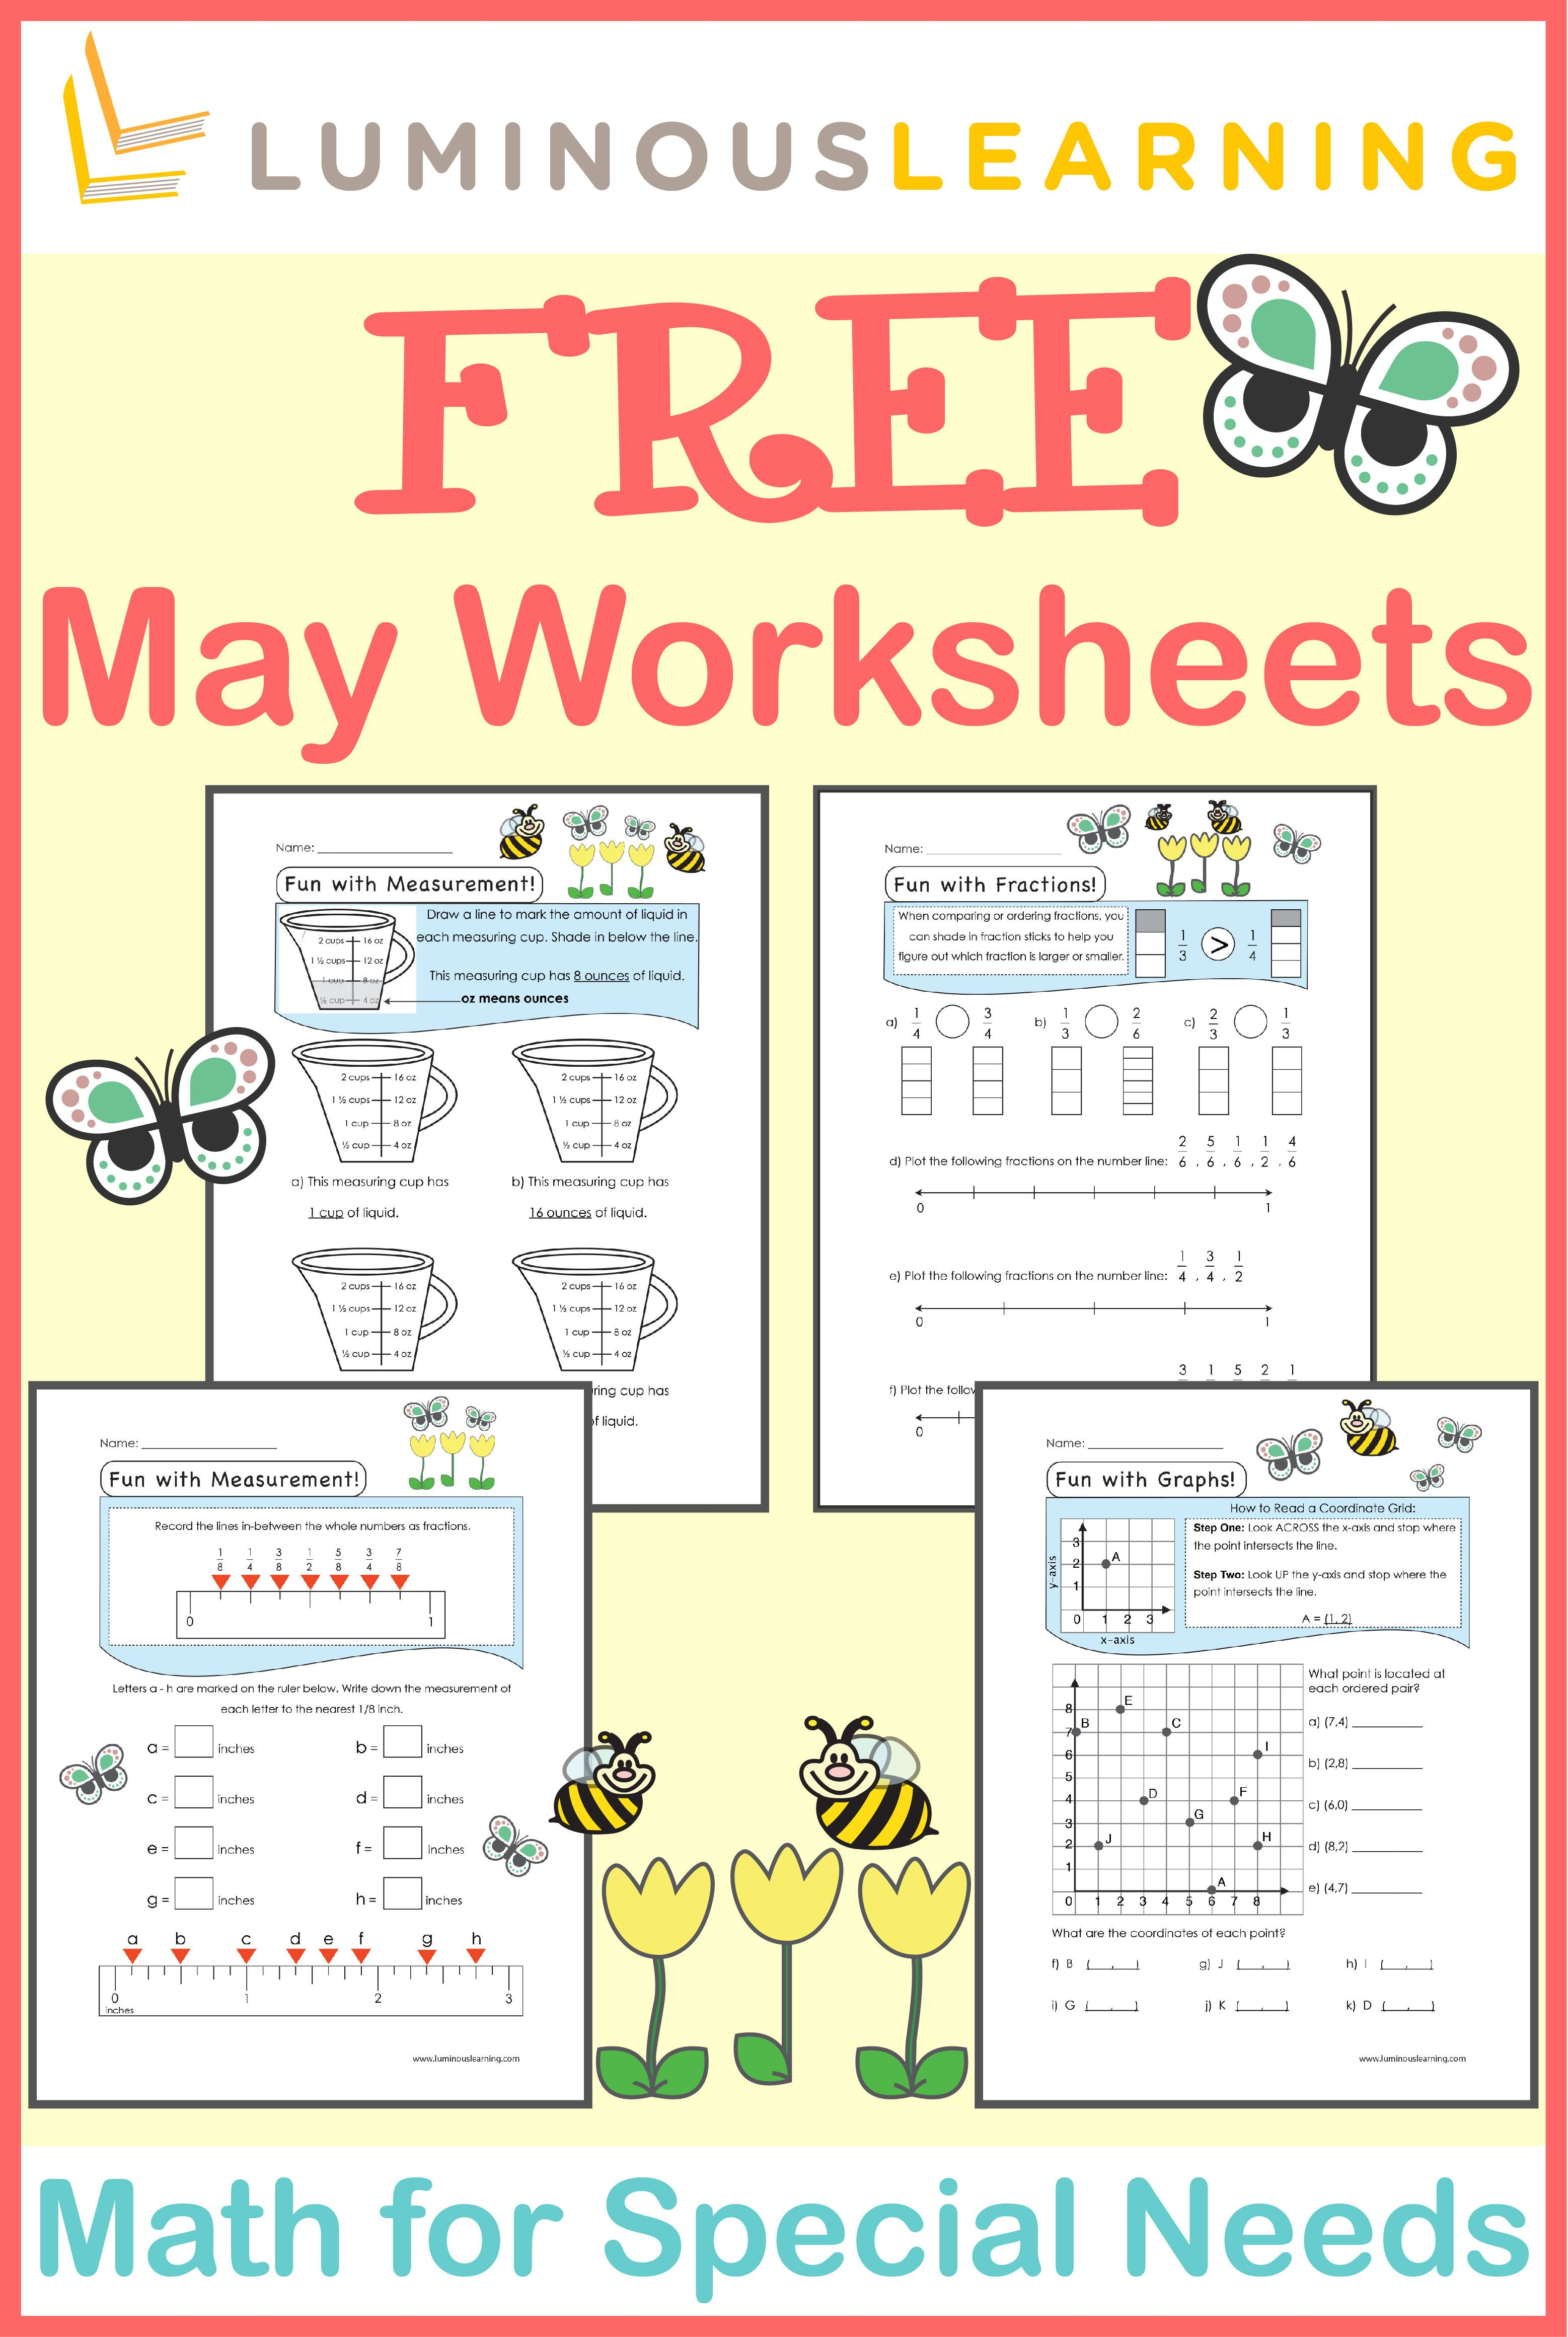 Luminous Learning Worksheets Are Designed With Built In Supports